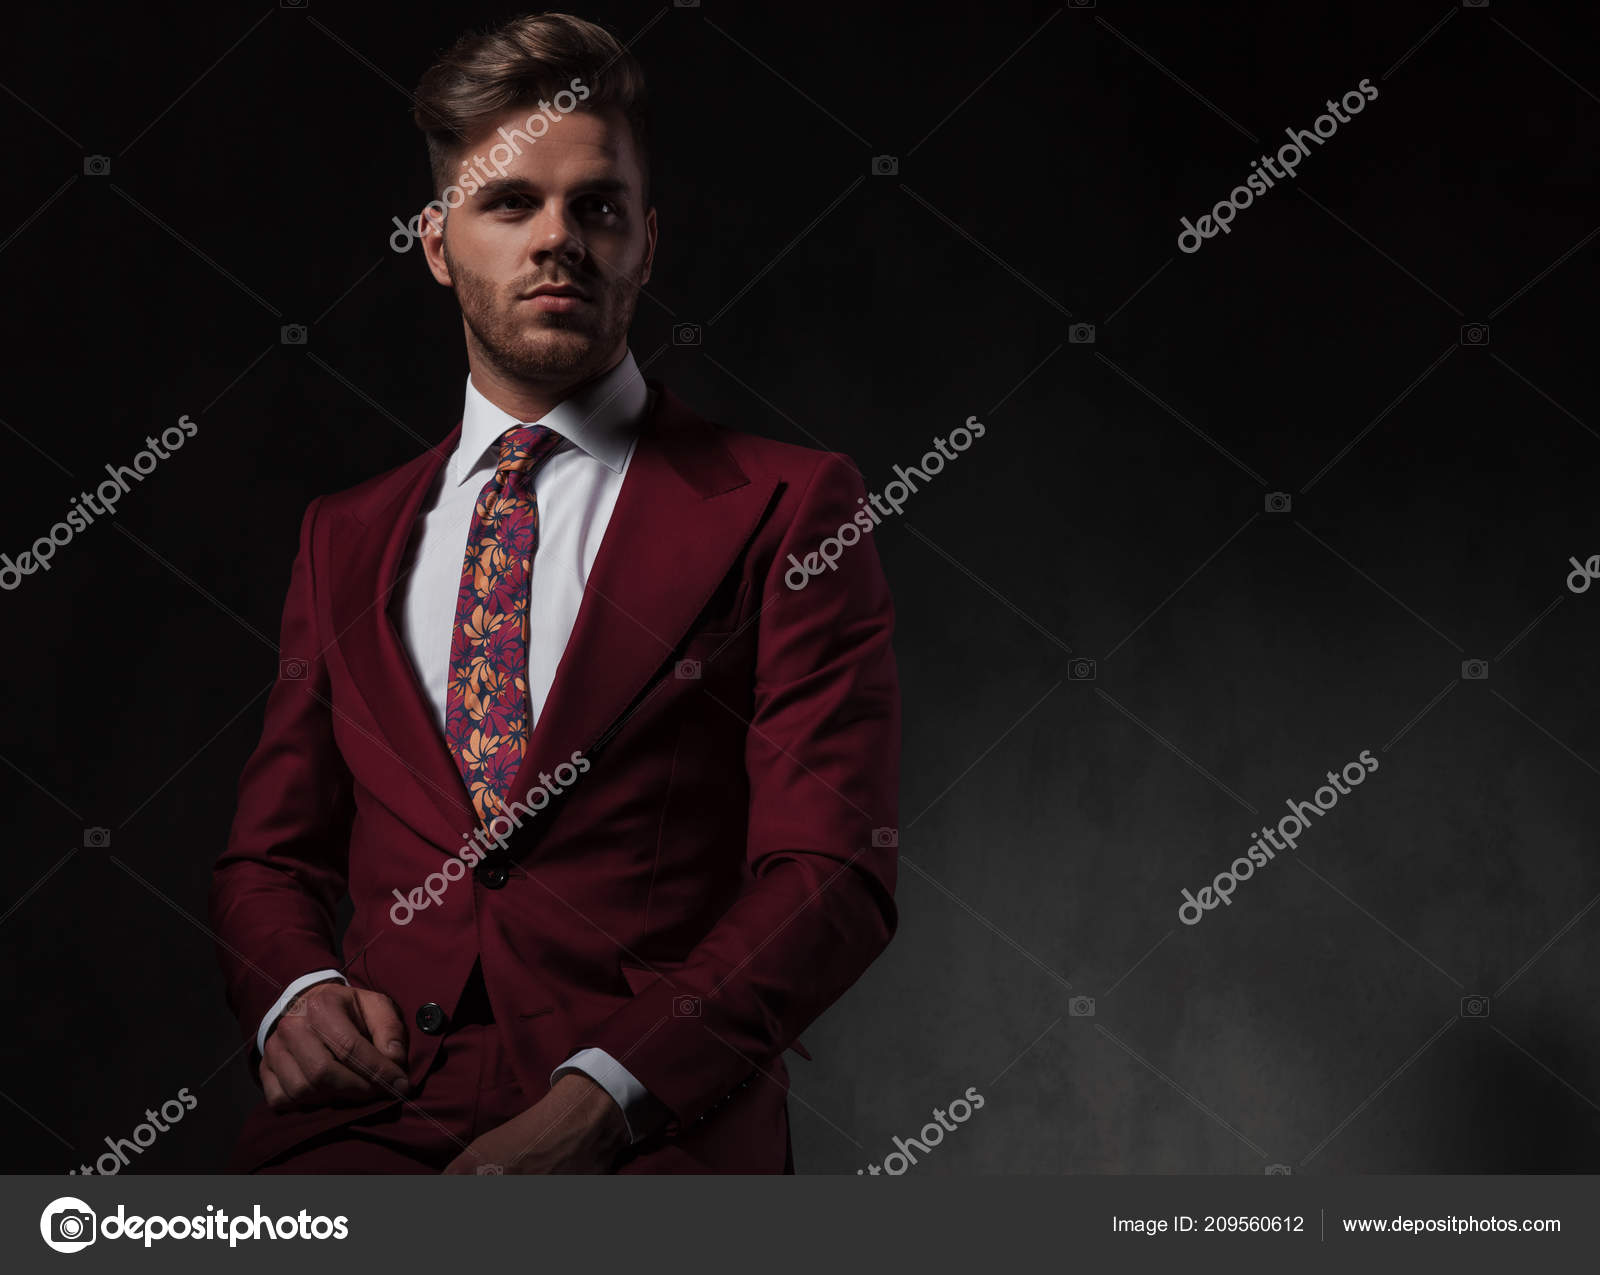 Portrait Handsome Stylish Man Red Suit Sitting Grey